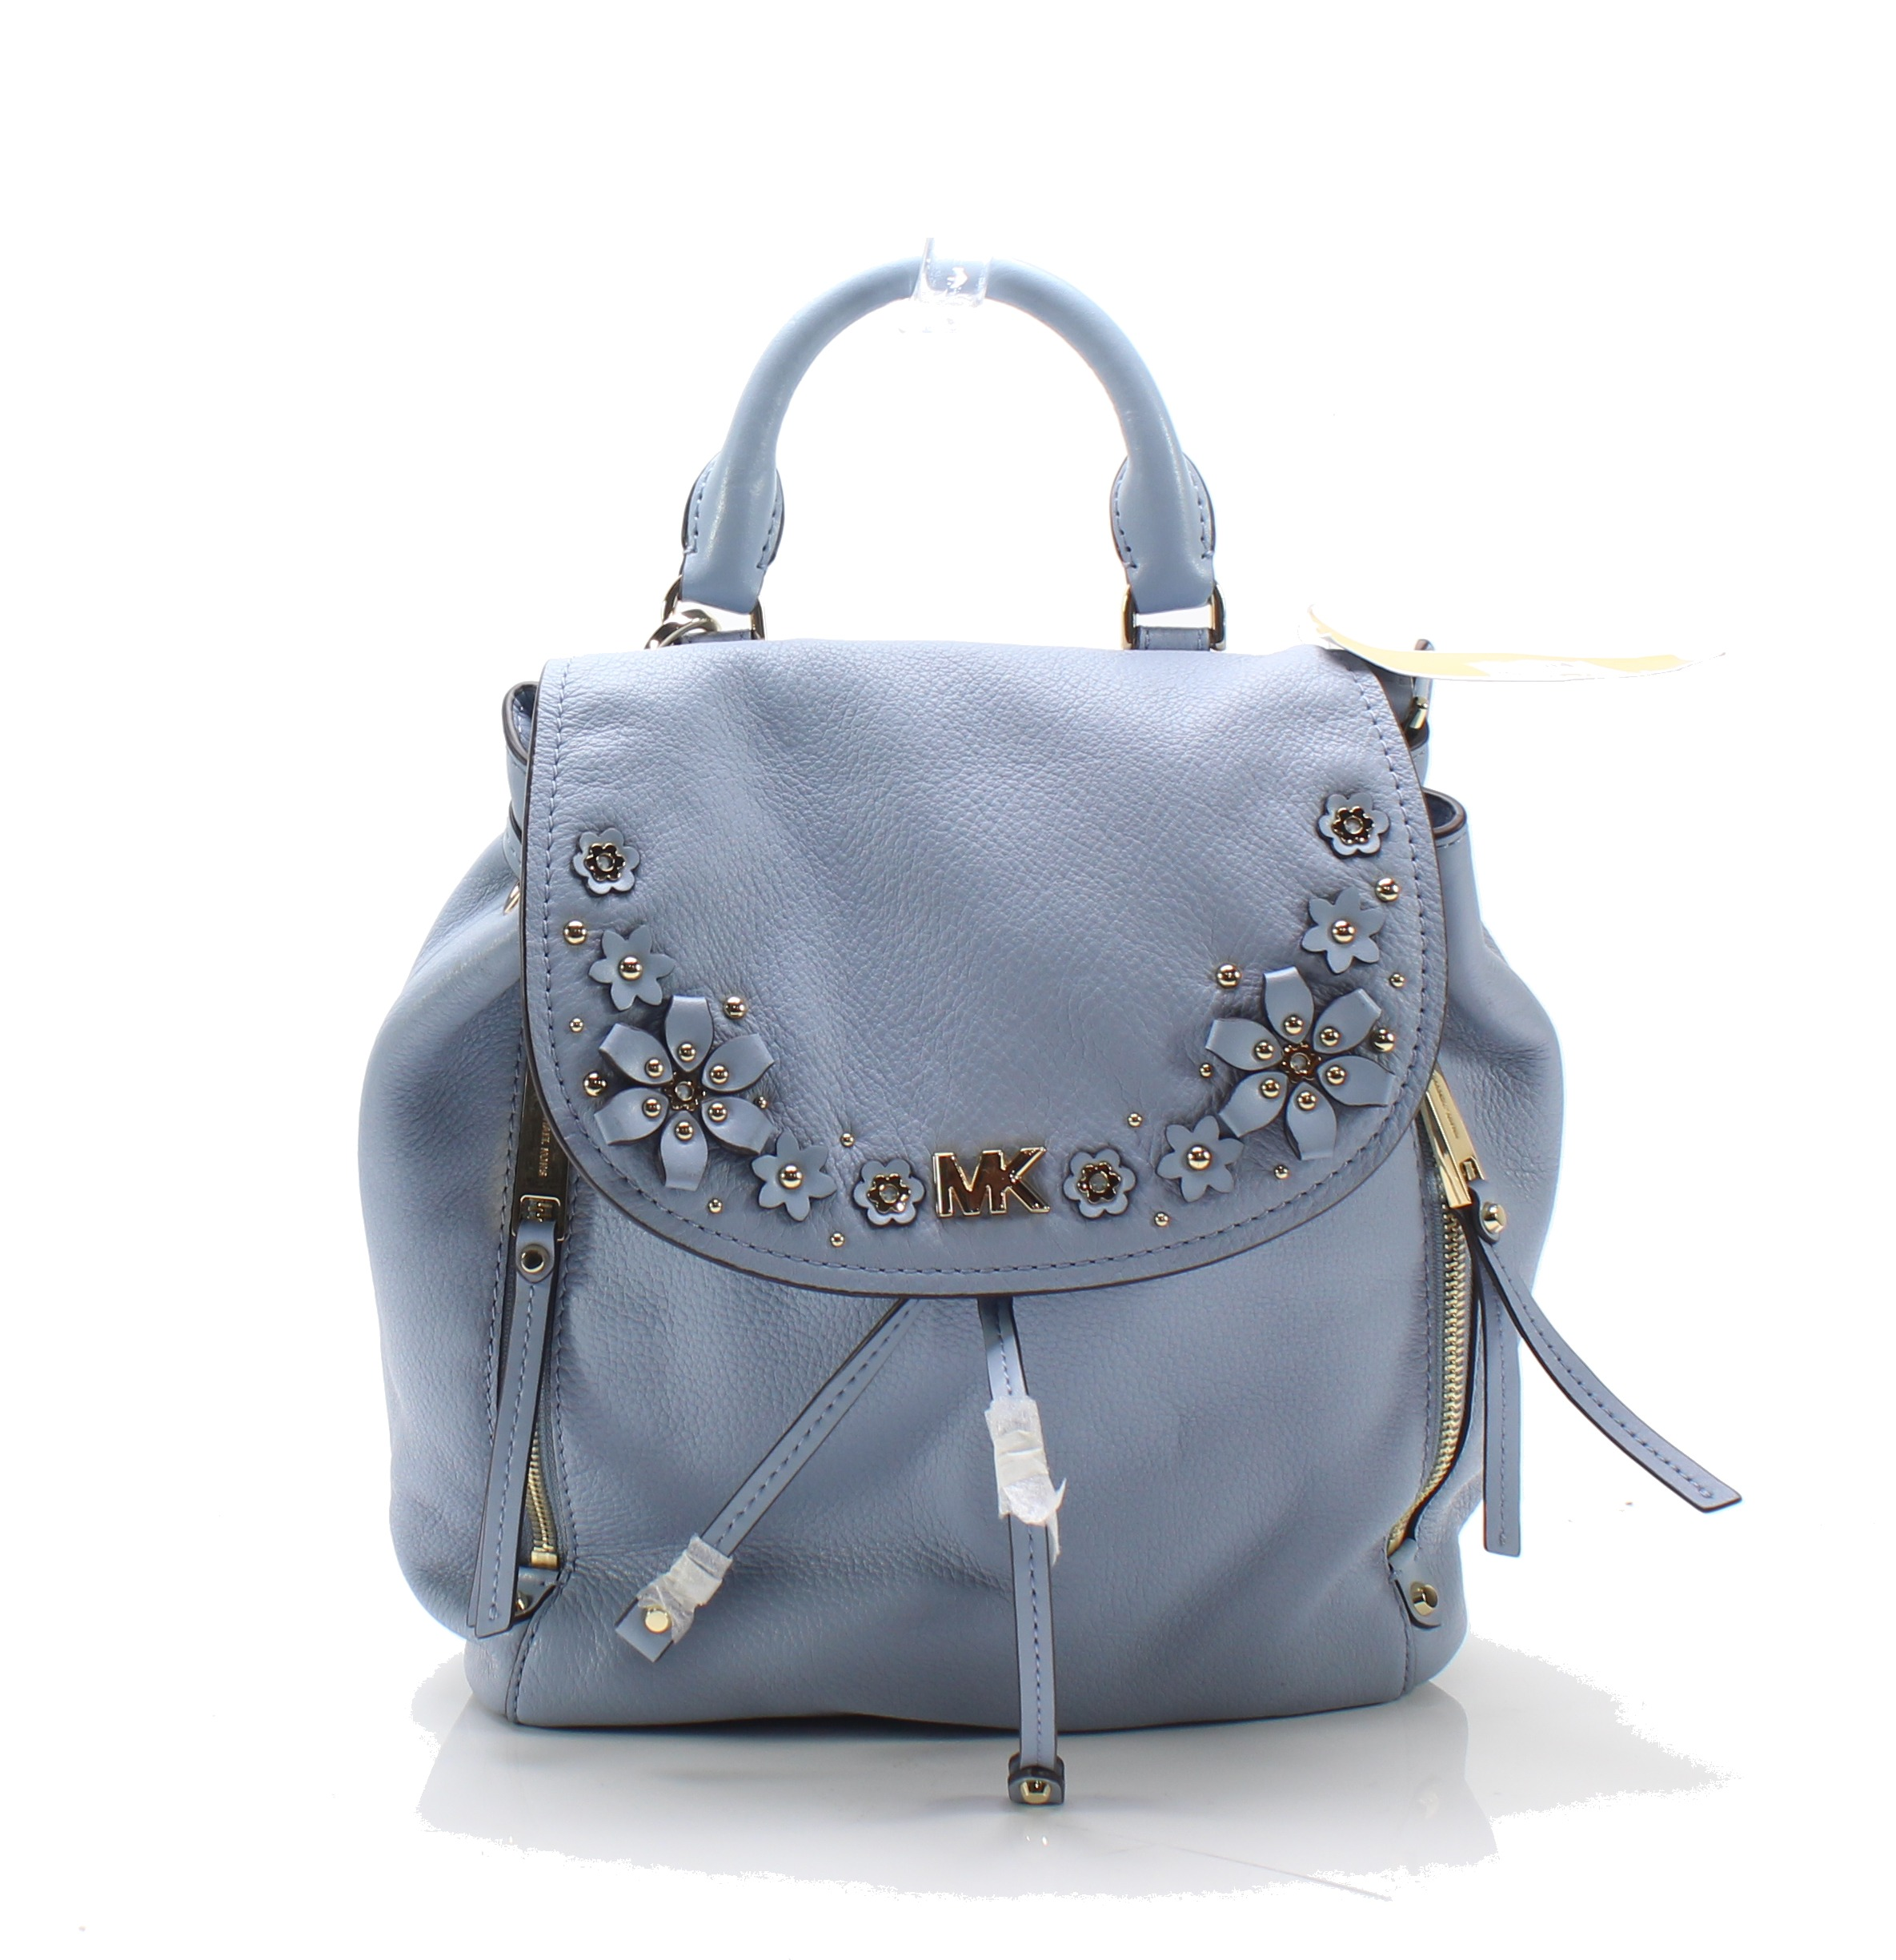 f18bd1bcb96f Michael Kors NEW Pale Blue Evie Small Flower Garden Leather Backpack  368-   028